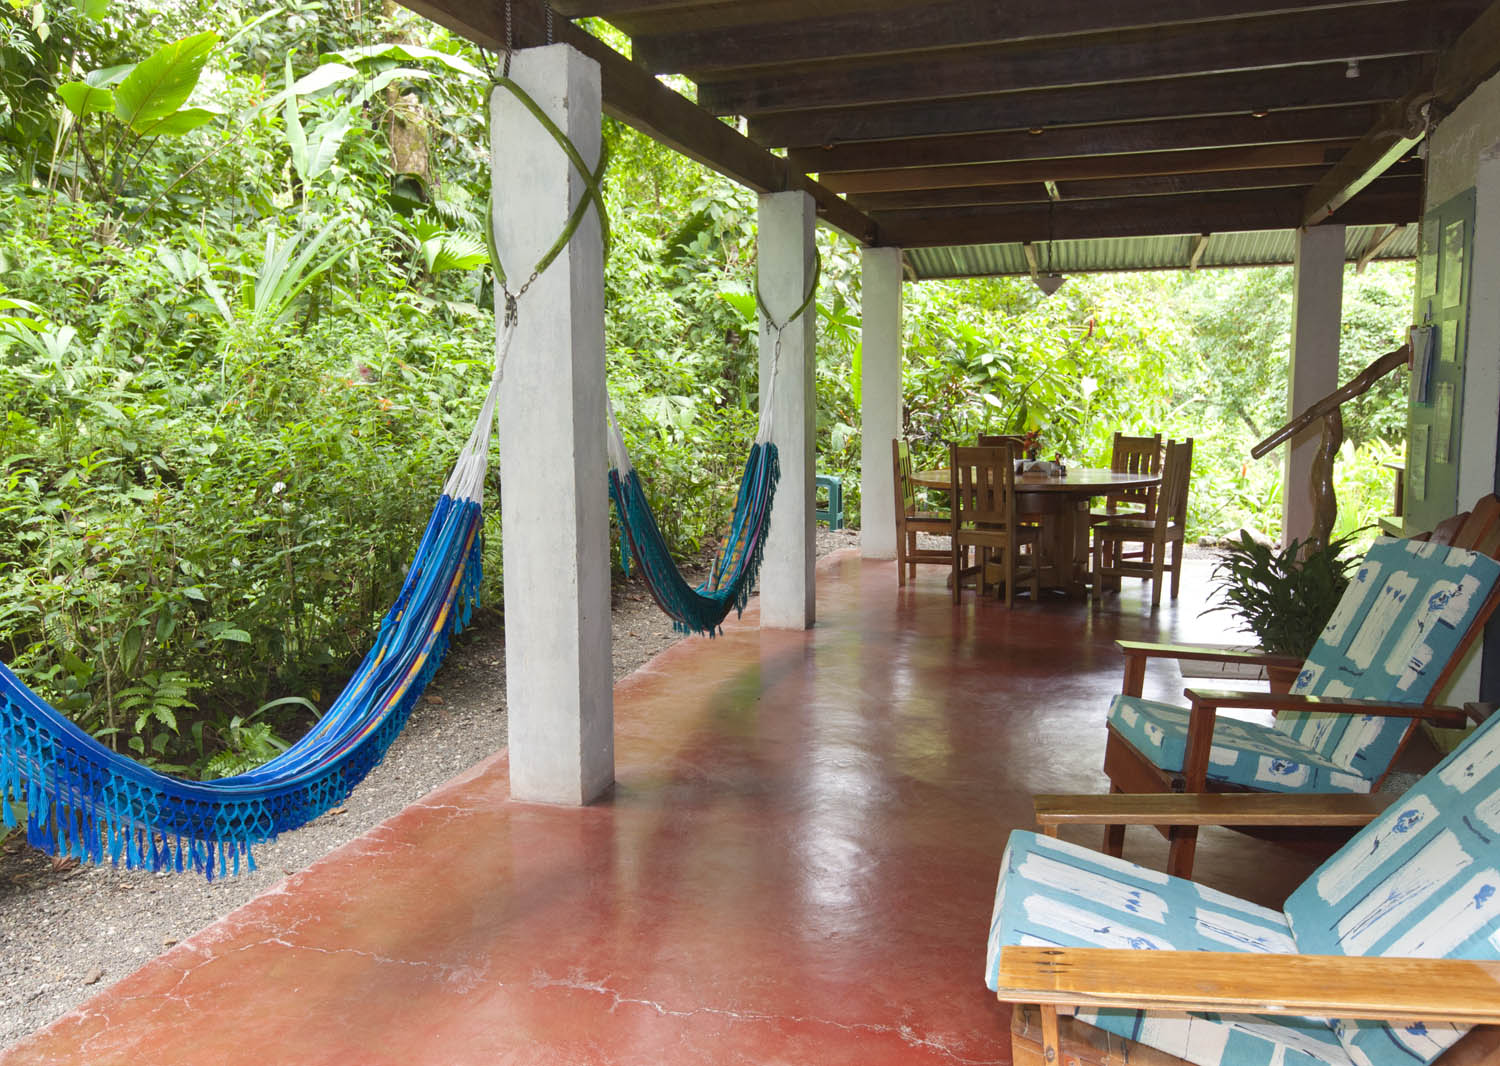 Our lodge provides plenty of sitting and lounging areas for you to watch for wildlife or read a book